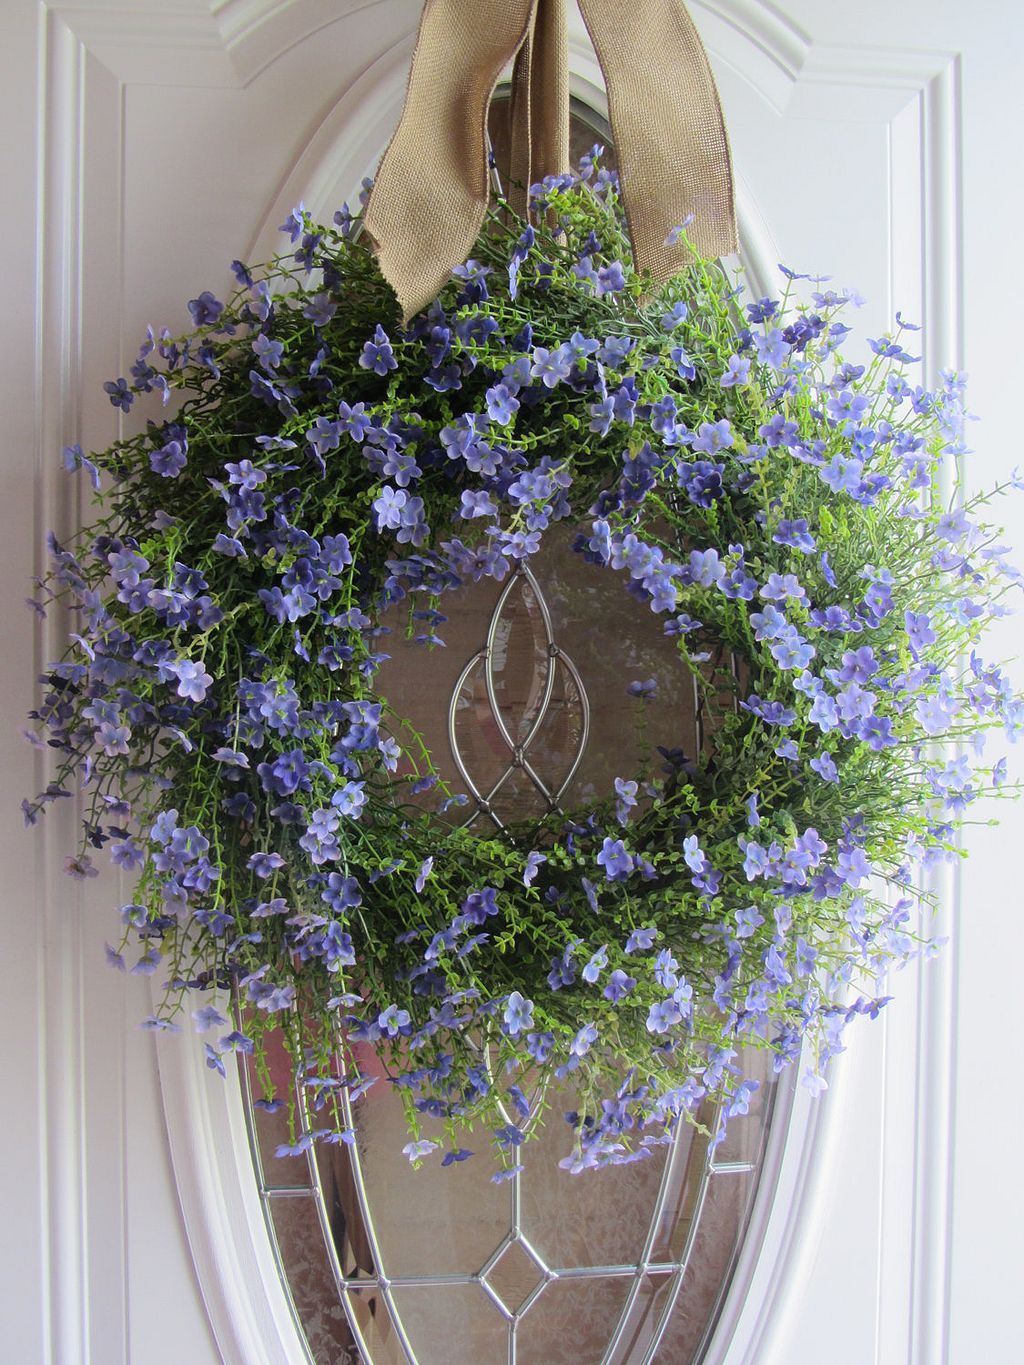 52 Beautiful Front Door Decorations And Designs Ideas: Wreaths, Wreaths For Front Door, Country Wreaths